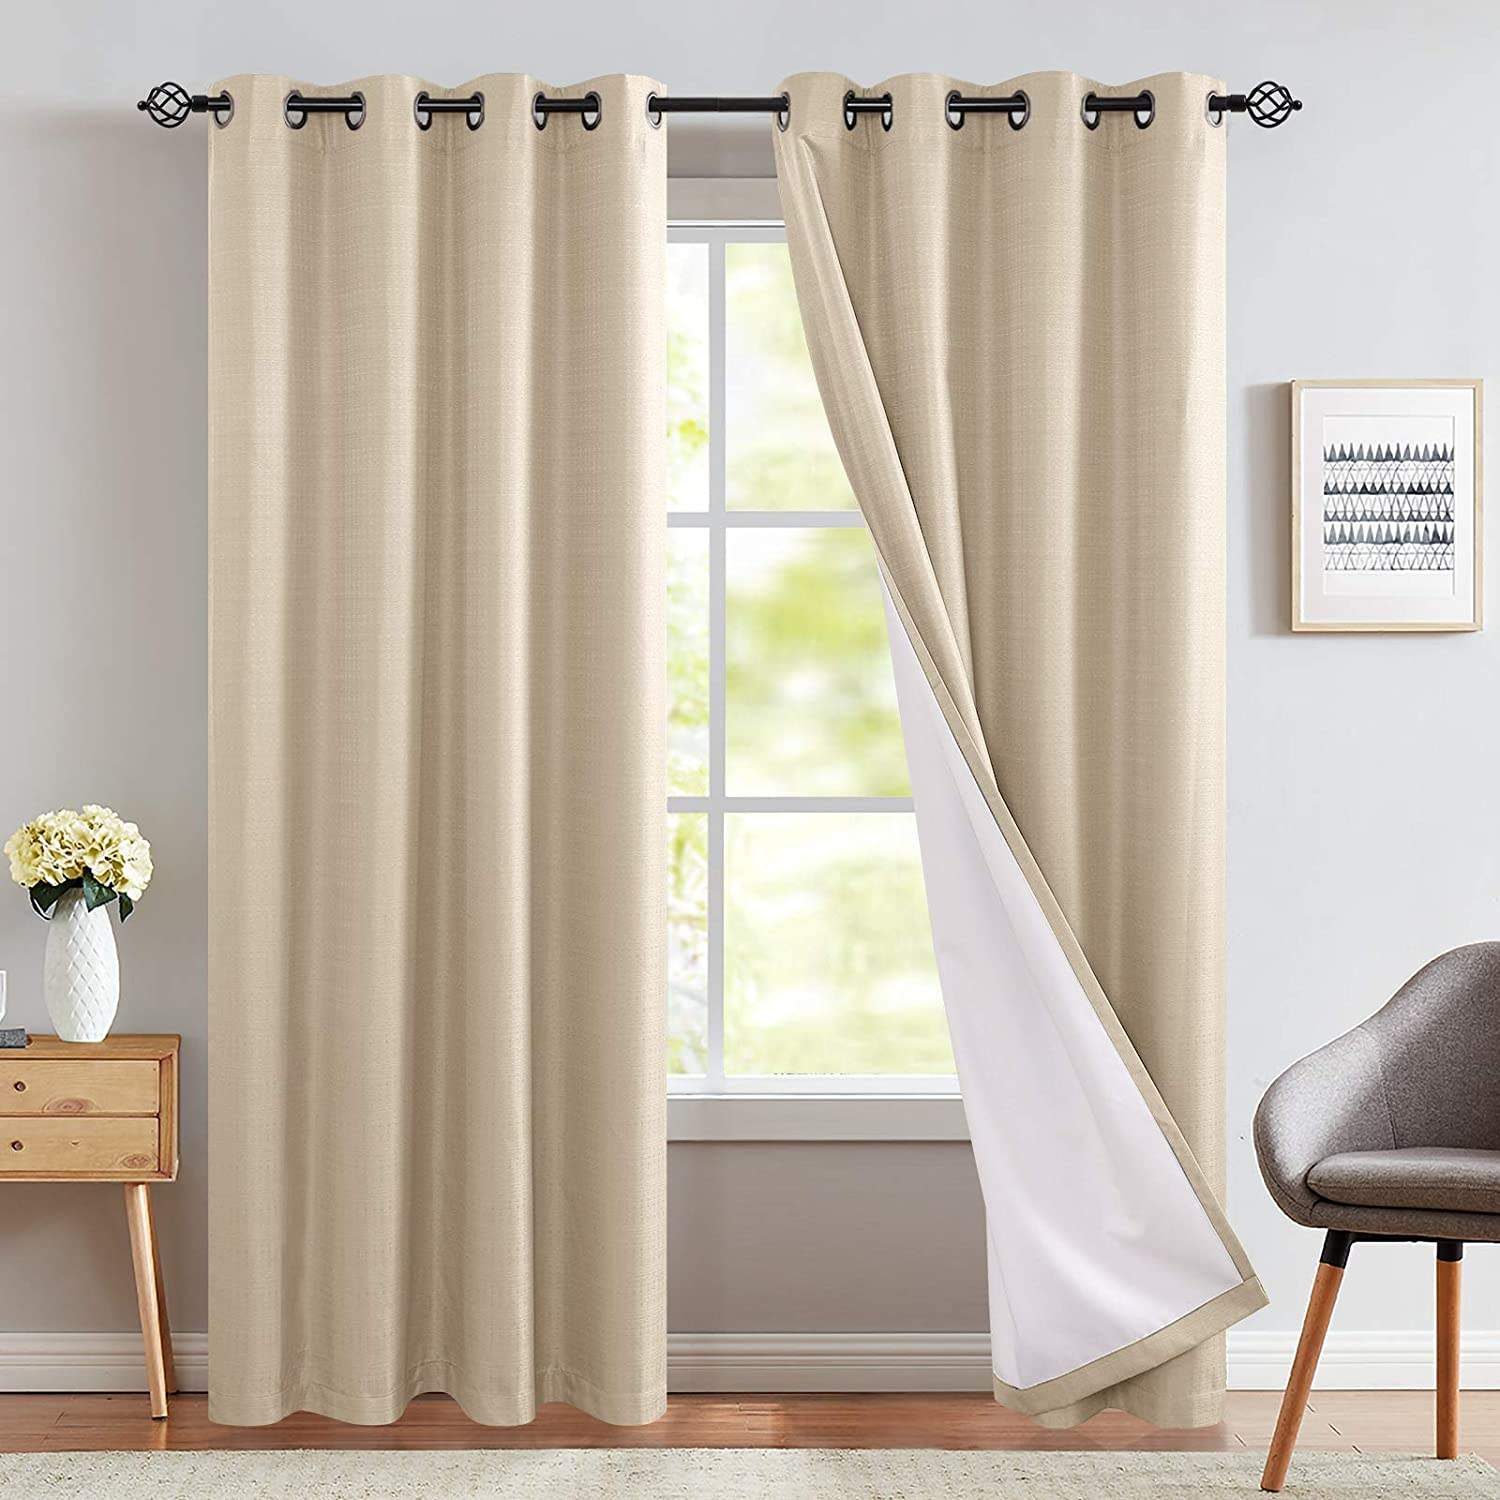 Amazon Com Room Darkening Curtains Beige 84 Inch Long For Bedroom Moderate Blackout Curtains Thermal Drapes Grommet Top One Panel Kitchen Dining